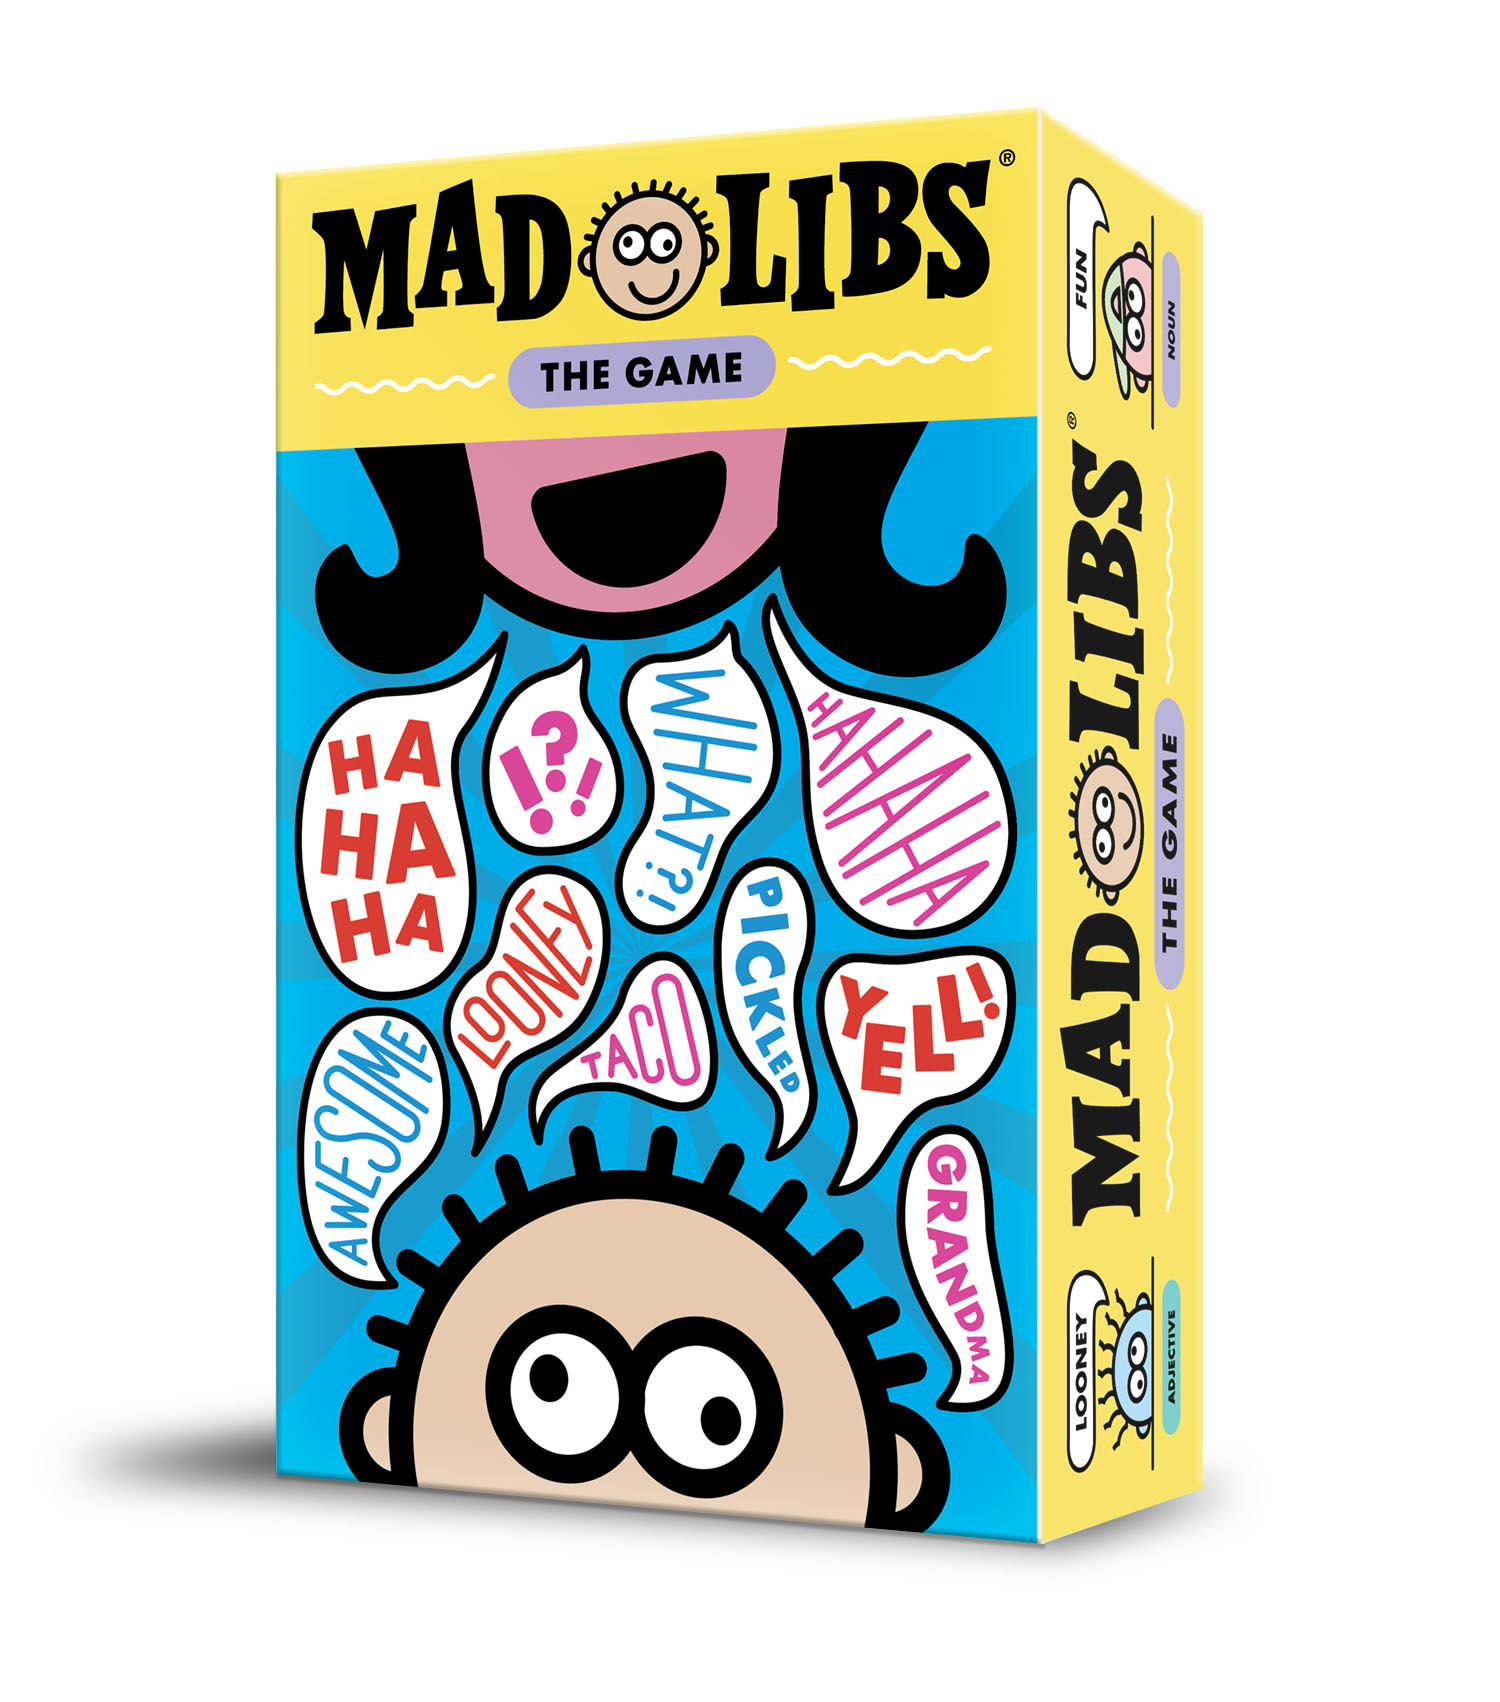 Mad Libs: The Game Demo Box Front